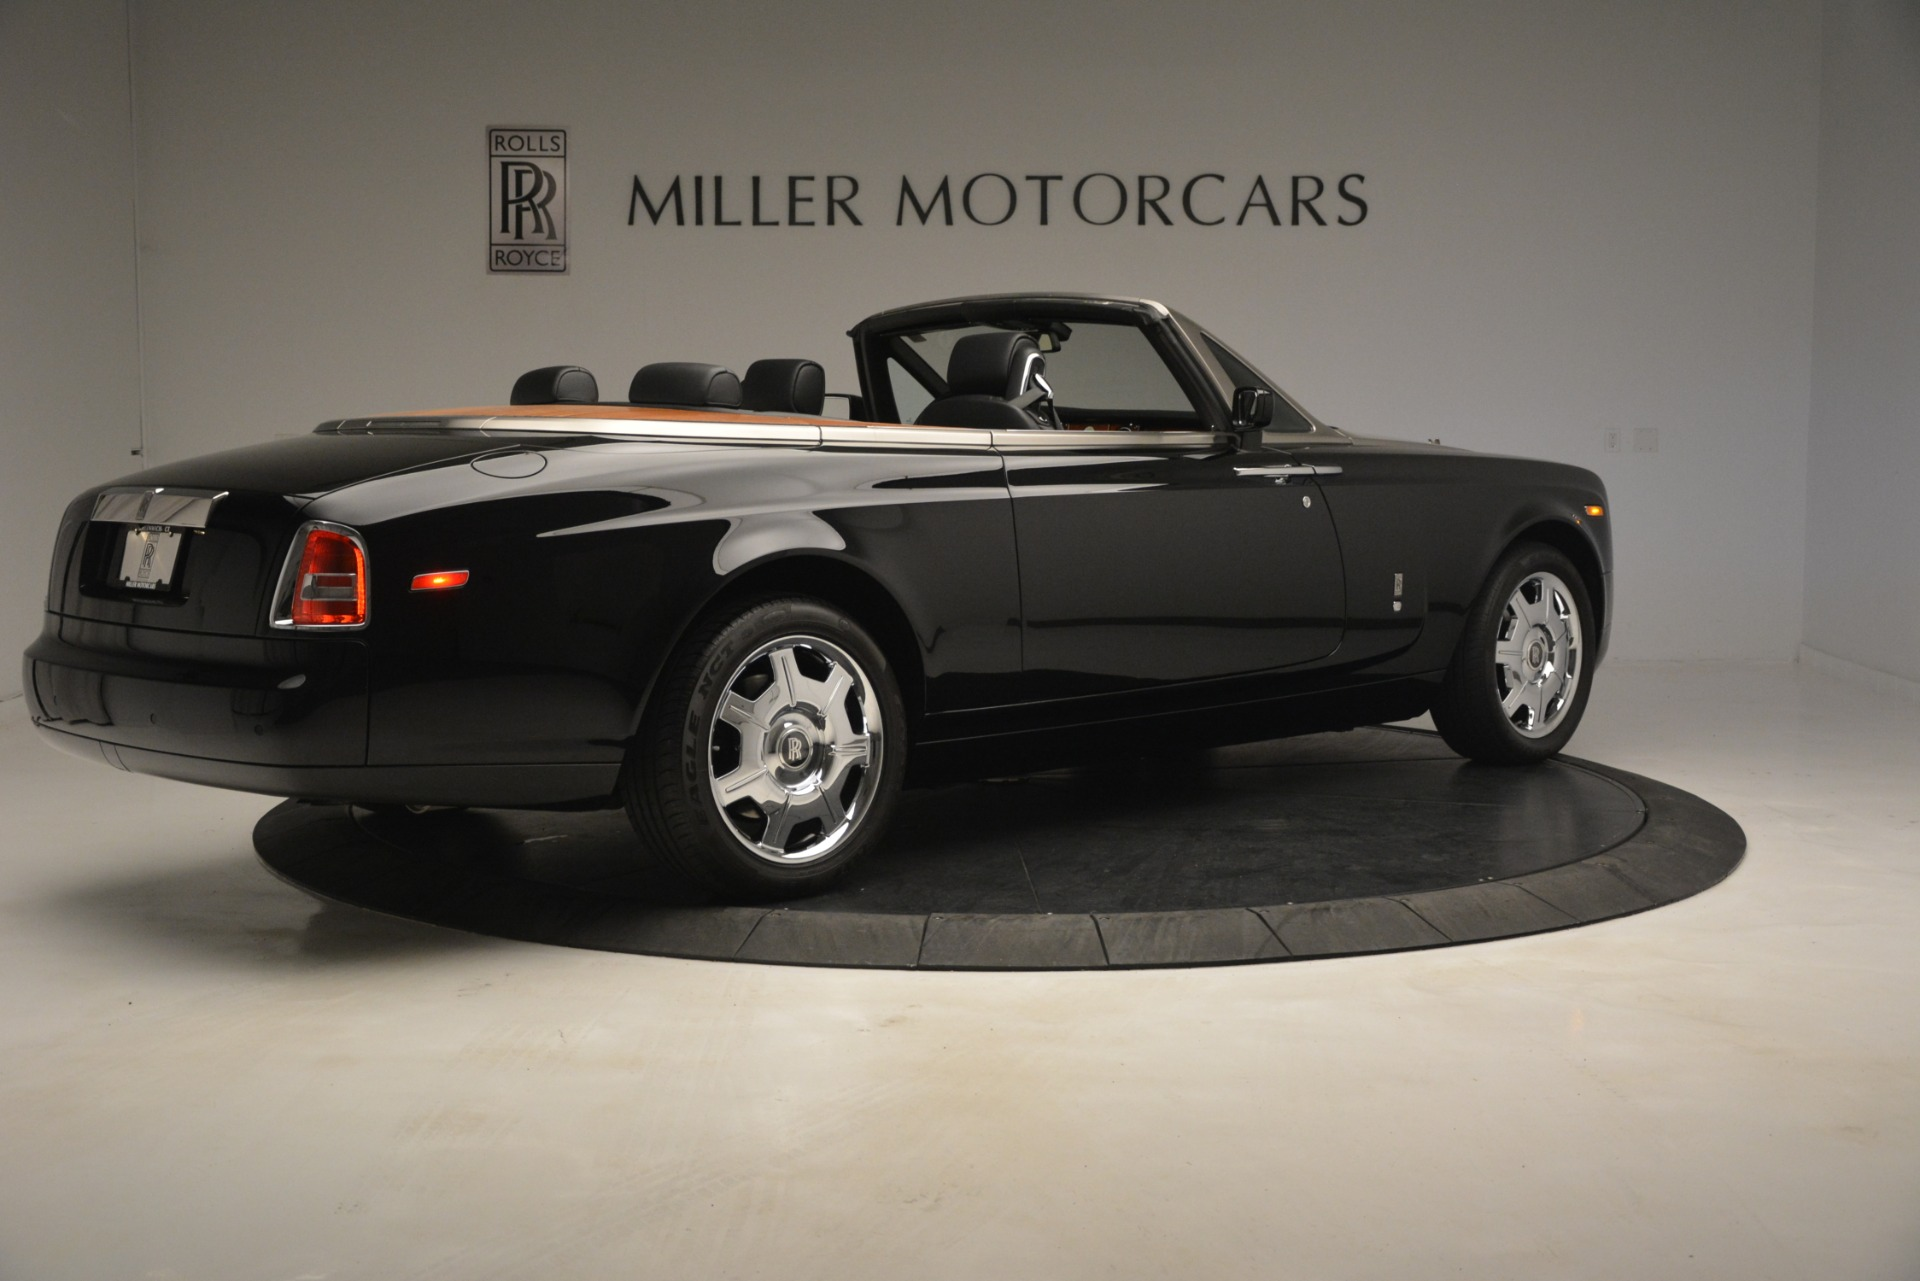 Used 2008 Rolls-Royce Phantom Drophead Coupe  For Sale In Greenwich, CT 3000_p12